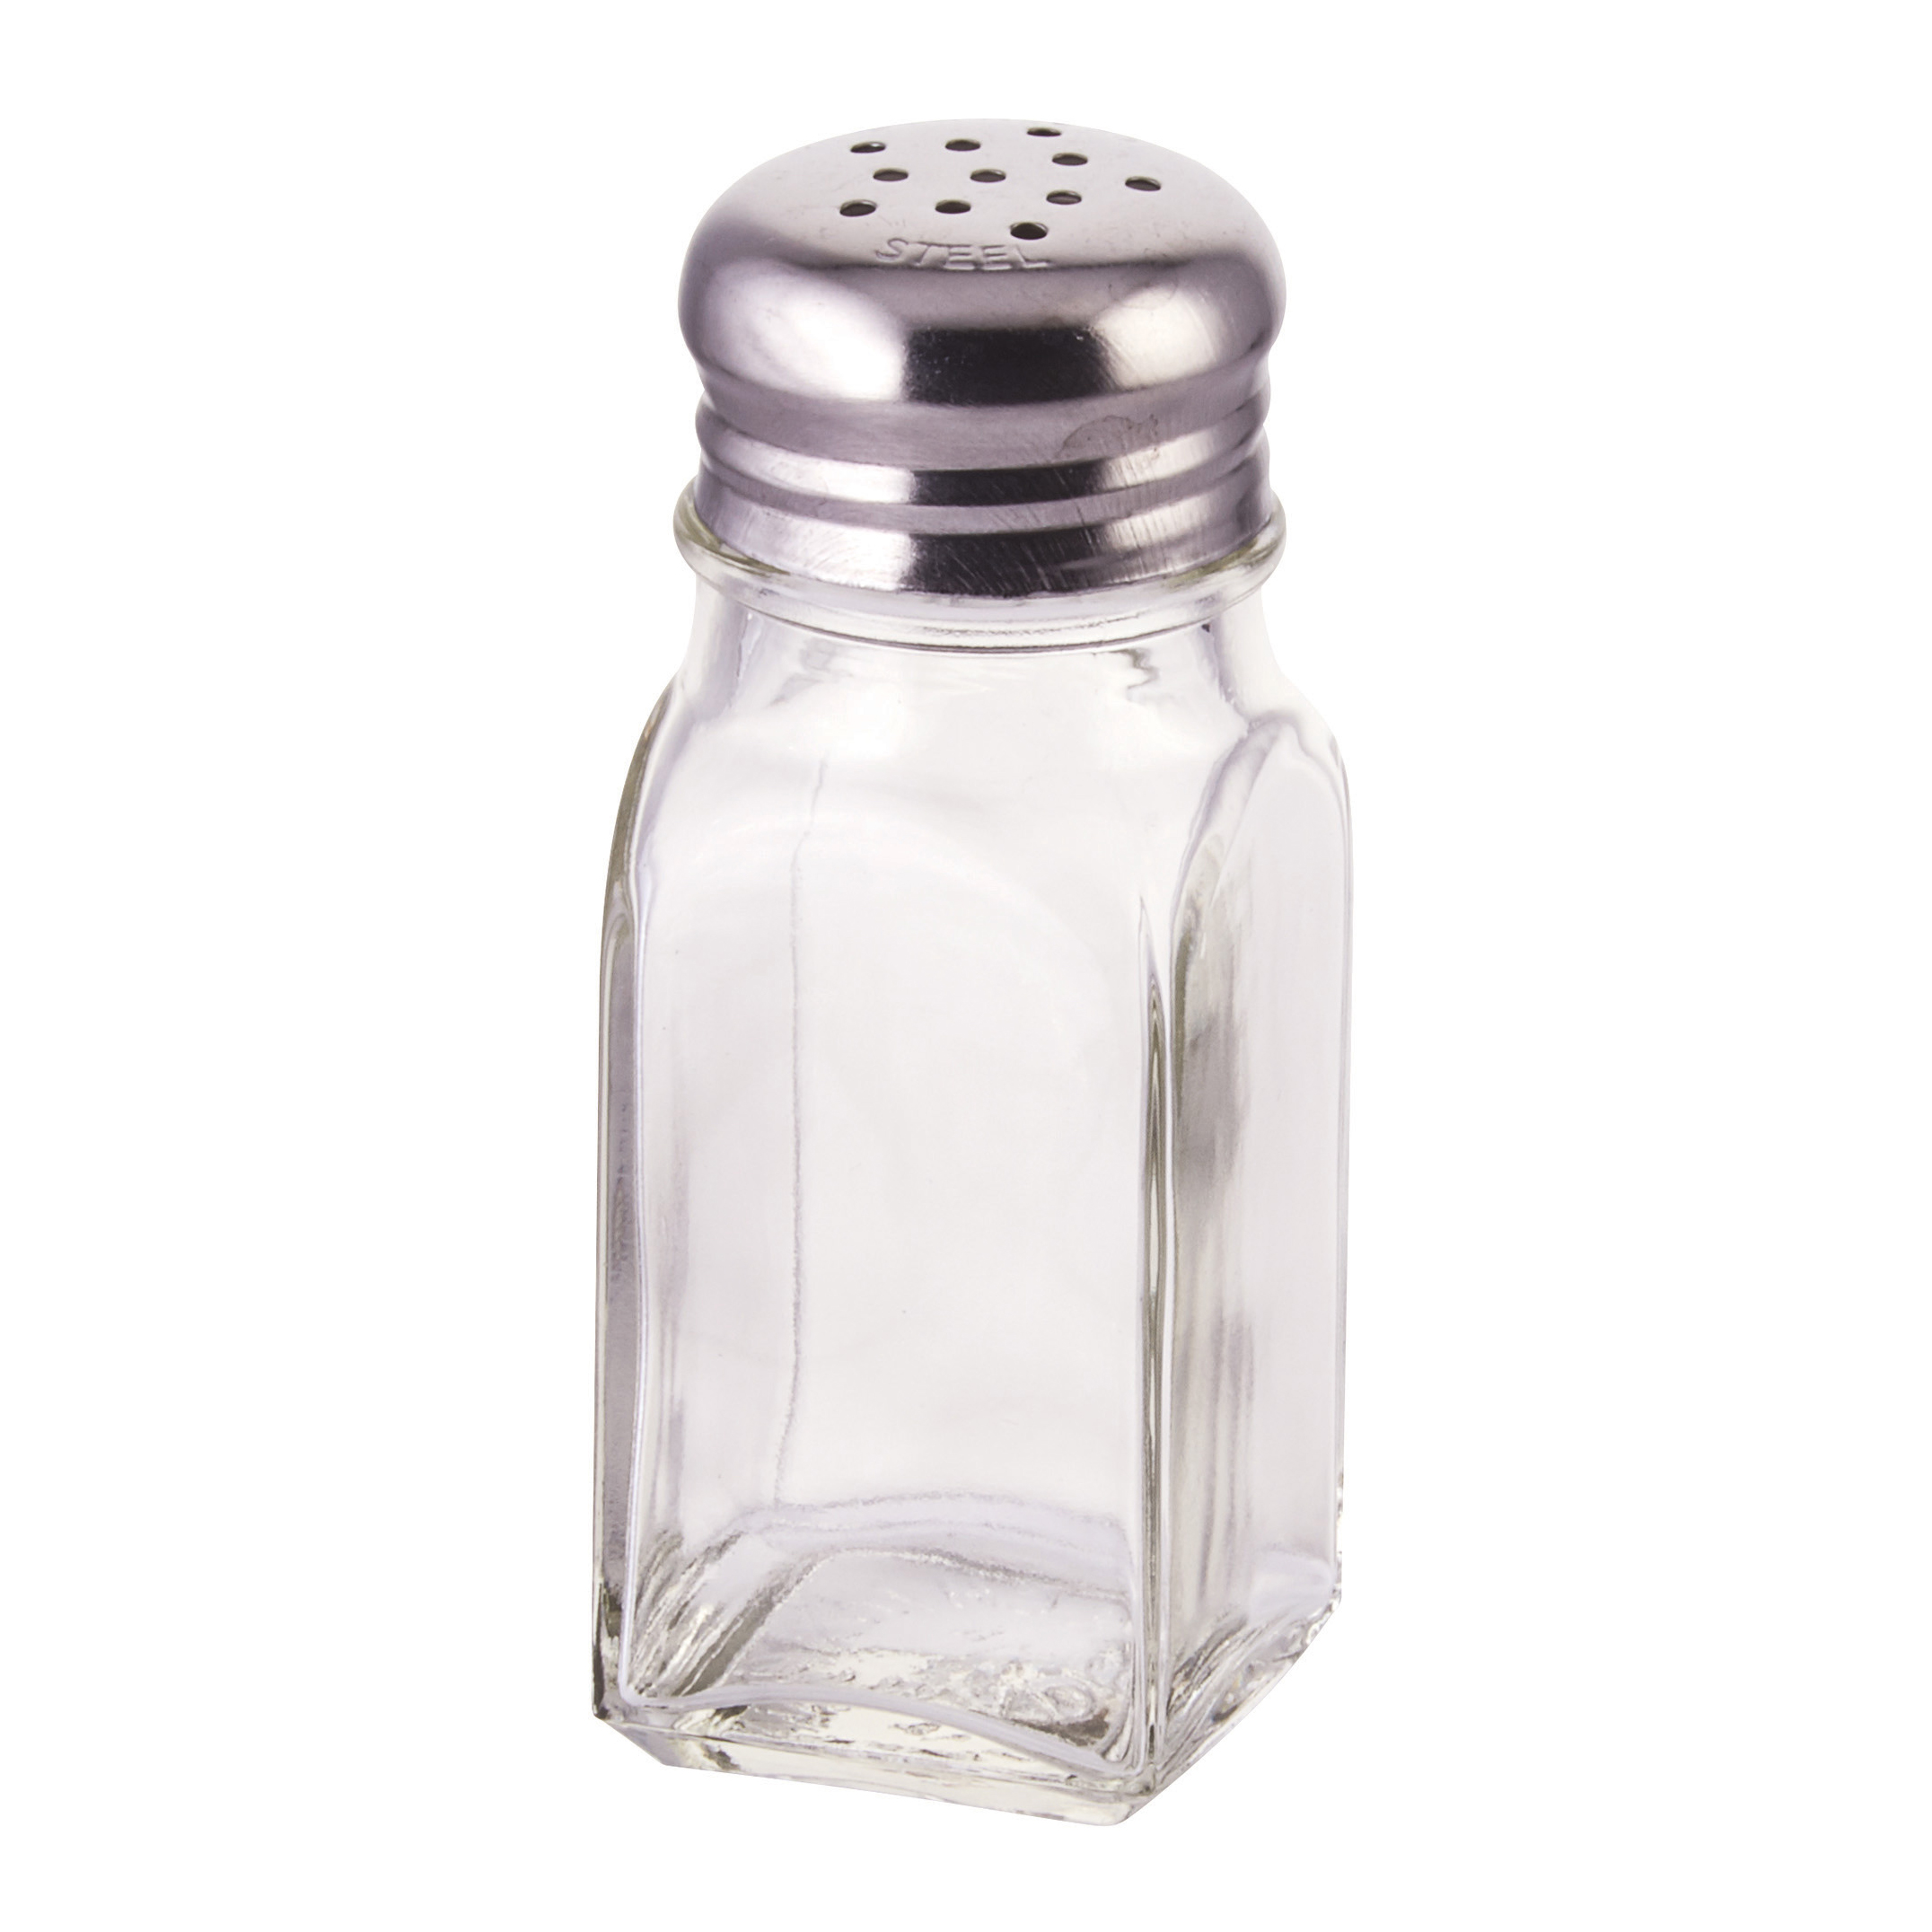 Winco G-109 salt / pepper shaker